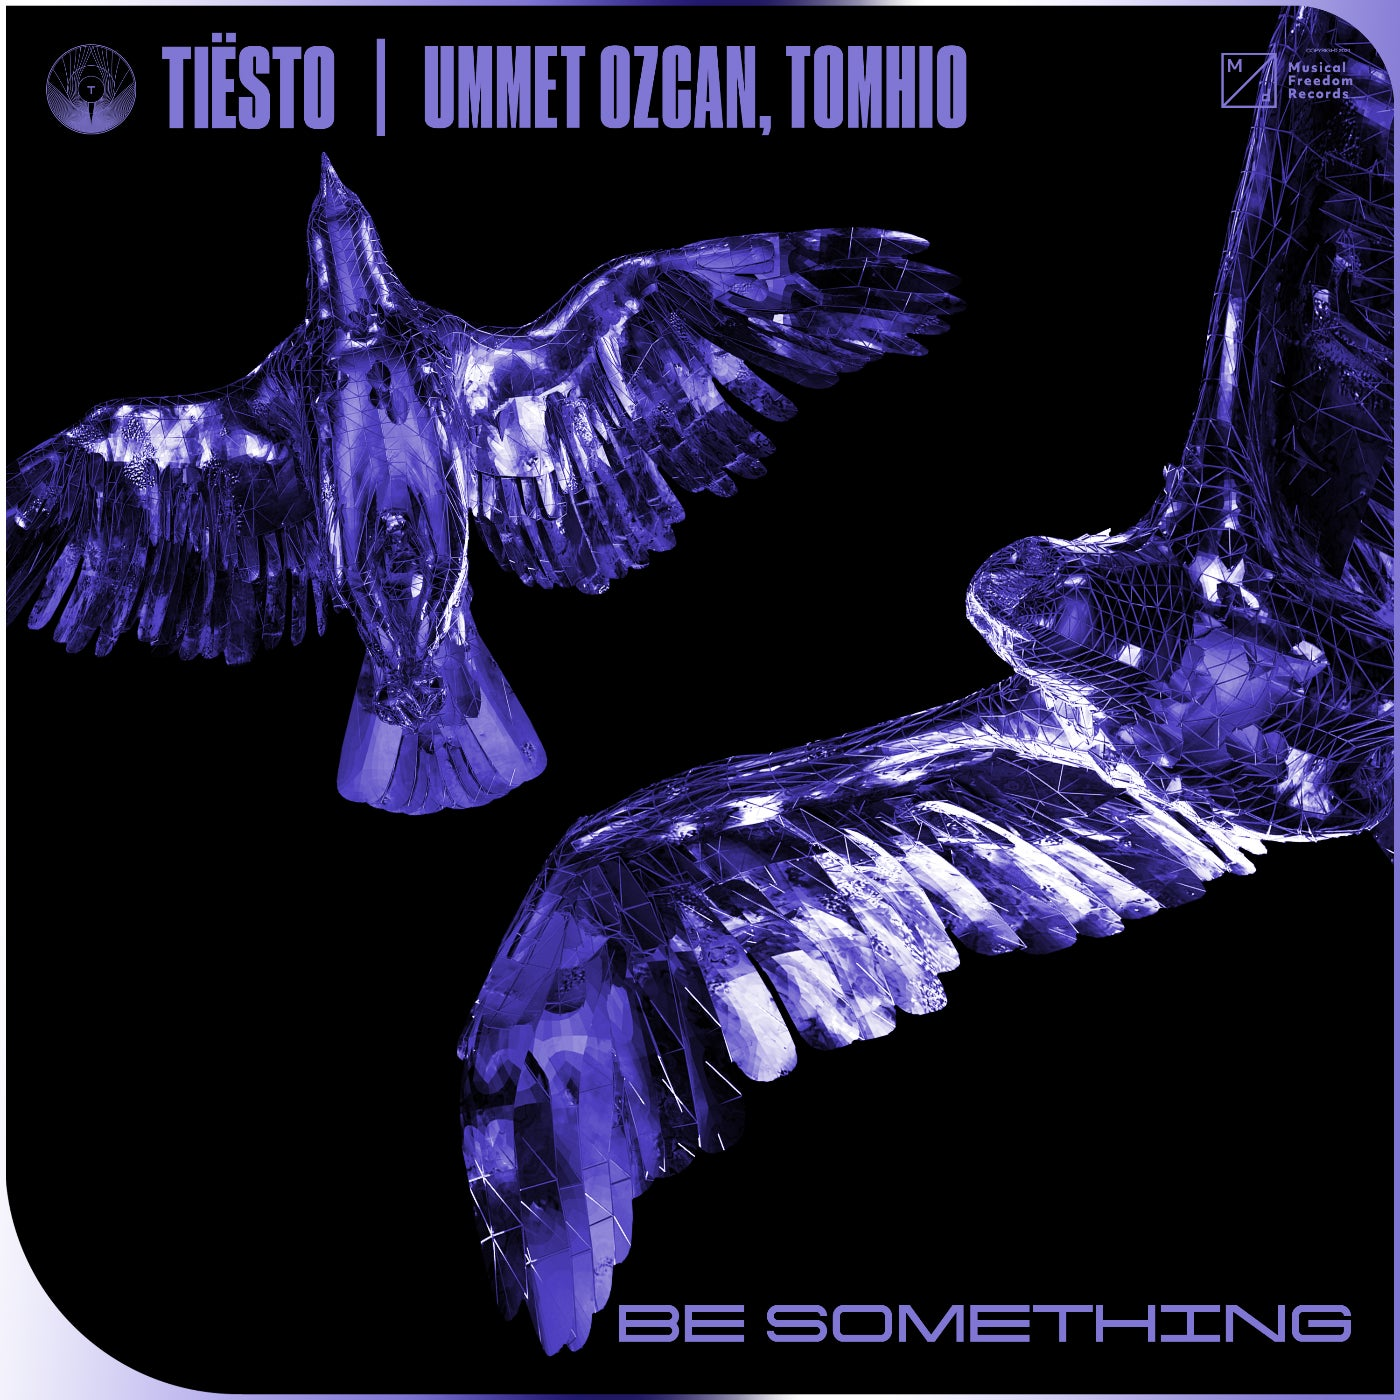 Be Something (Extended Mix)